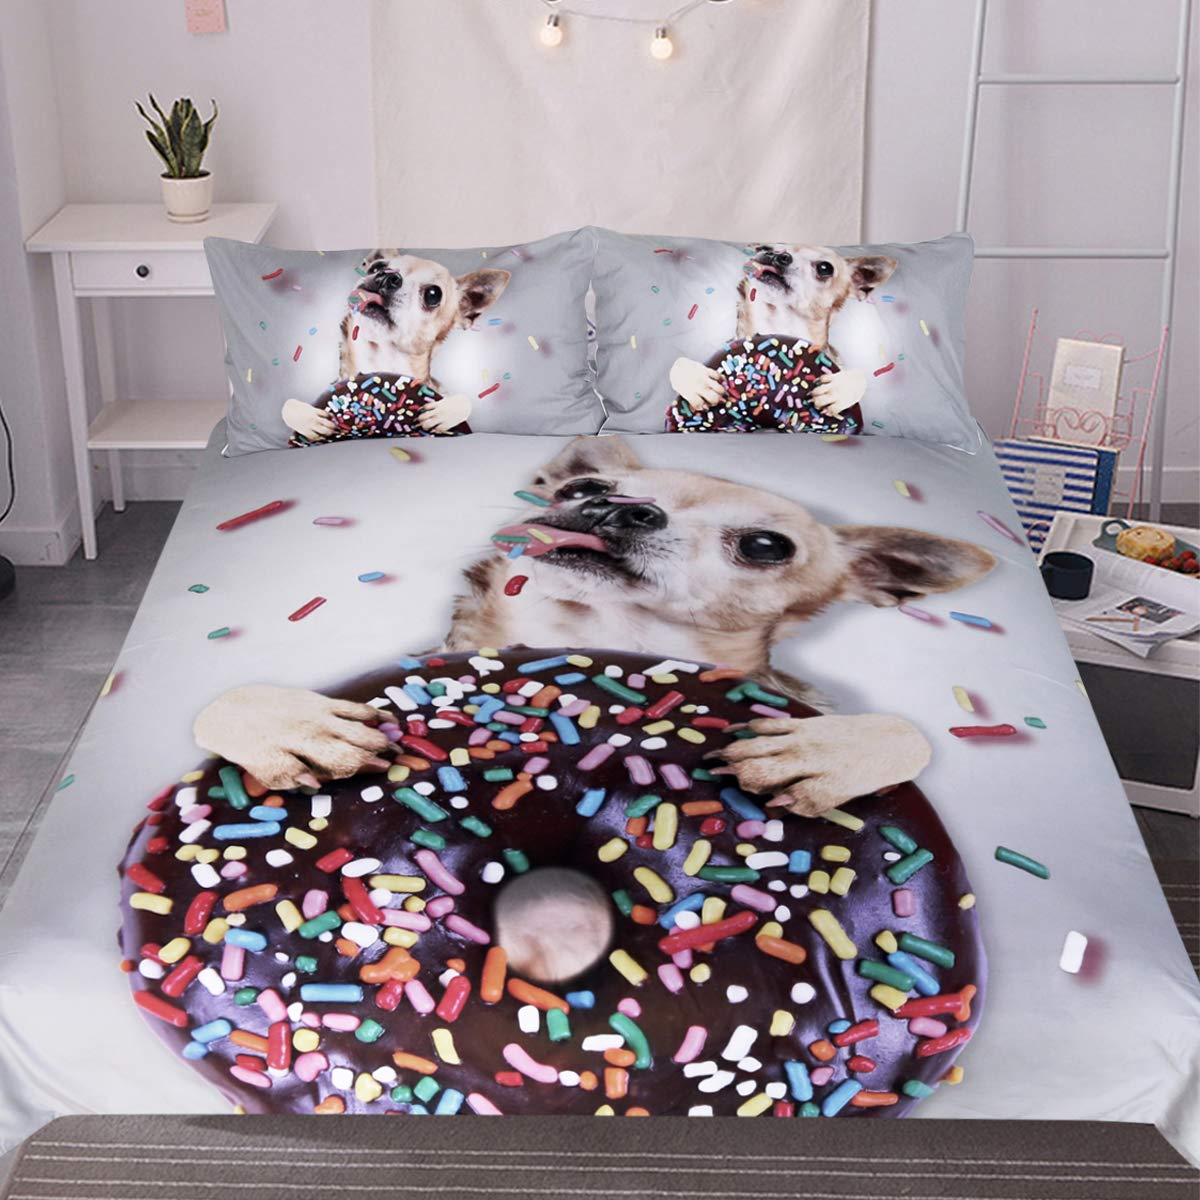 Dog Themed Bedding Sets.Sleepwish Dog Themed Bedding Sets Funny Chihuahua With Sprinkle Donut Duvet Cover 3 Pieces Kids Cartoon Animal Grey Bedspread Queen